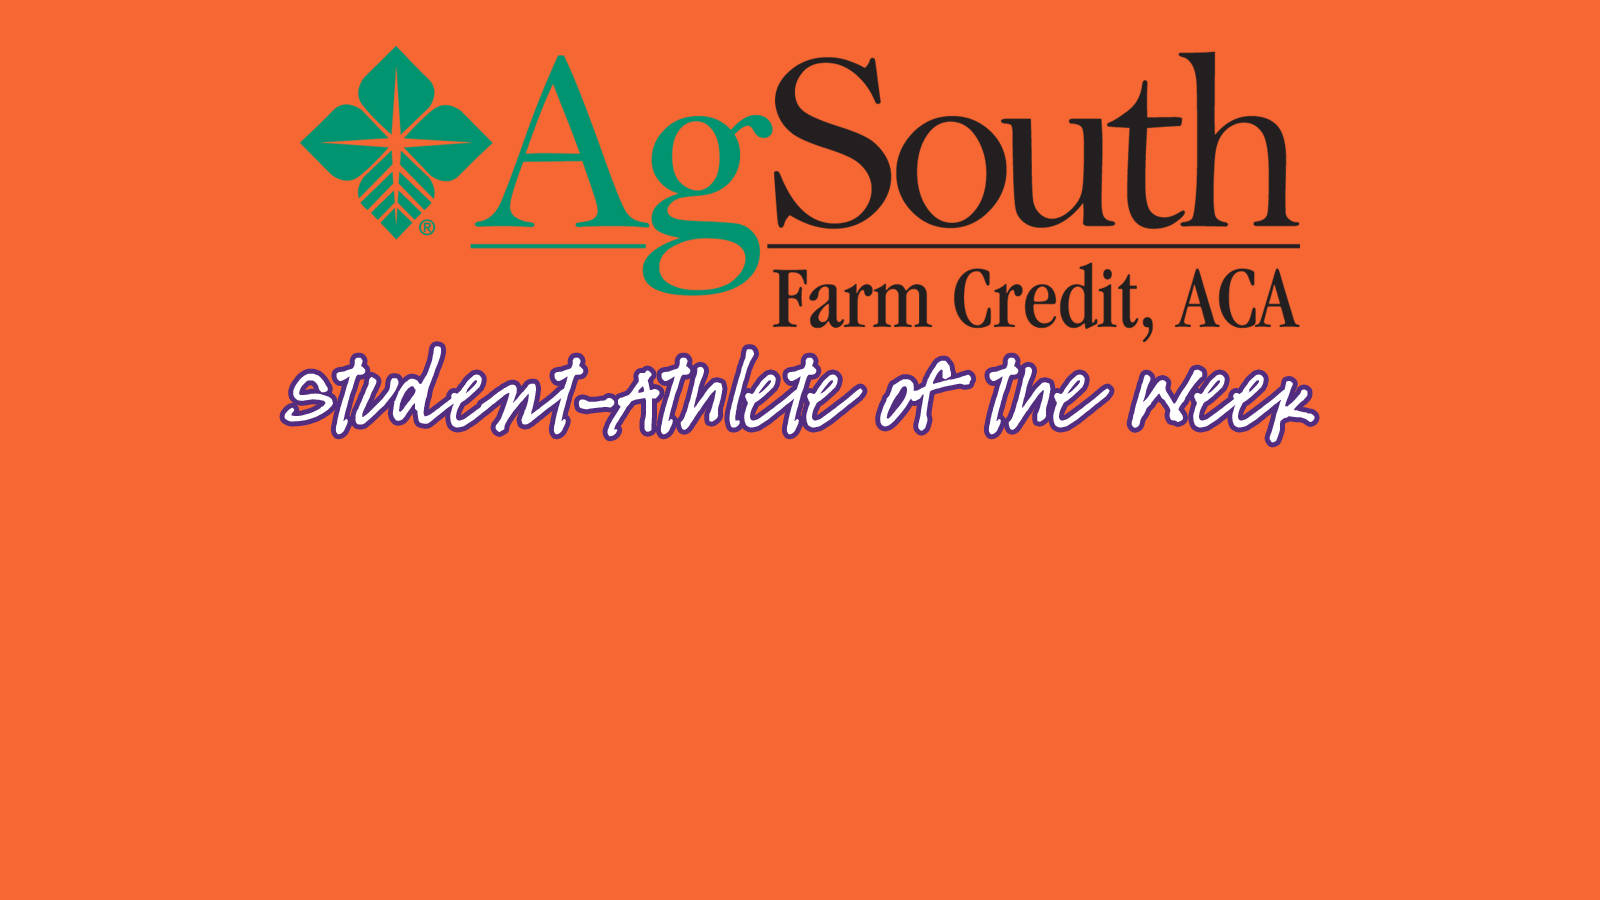 AgSouth Homegrown Athlete of the Week – Dezerea Bryant